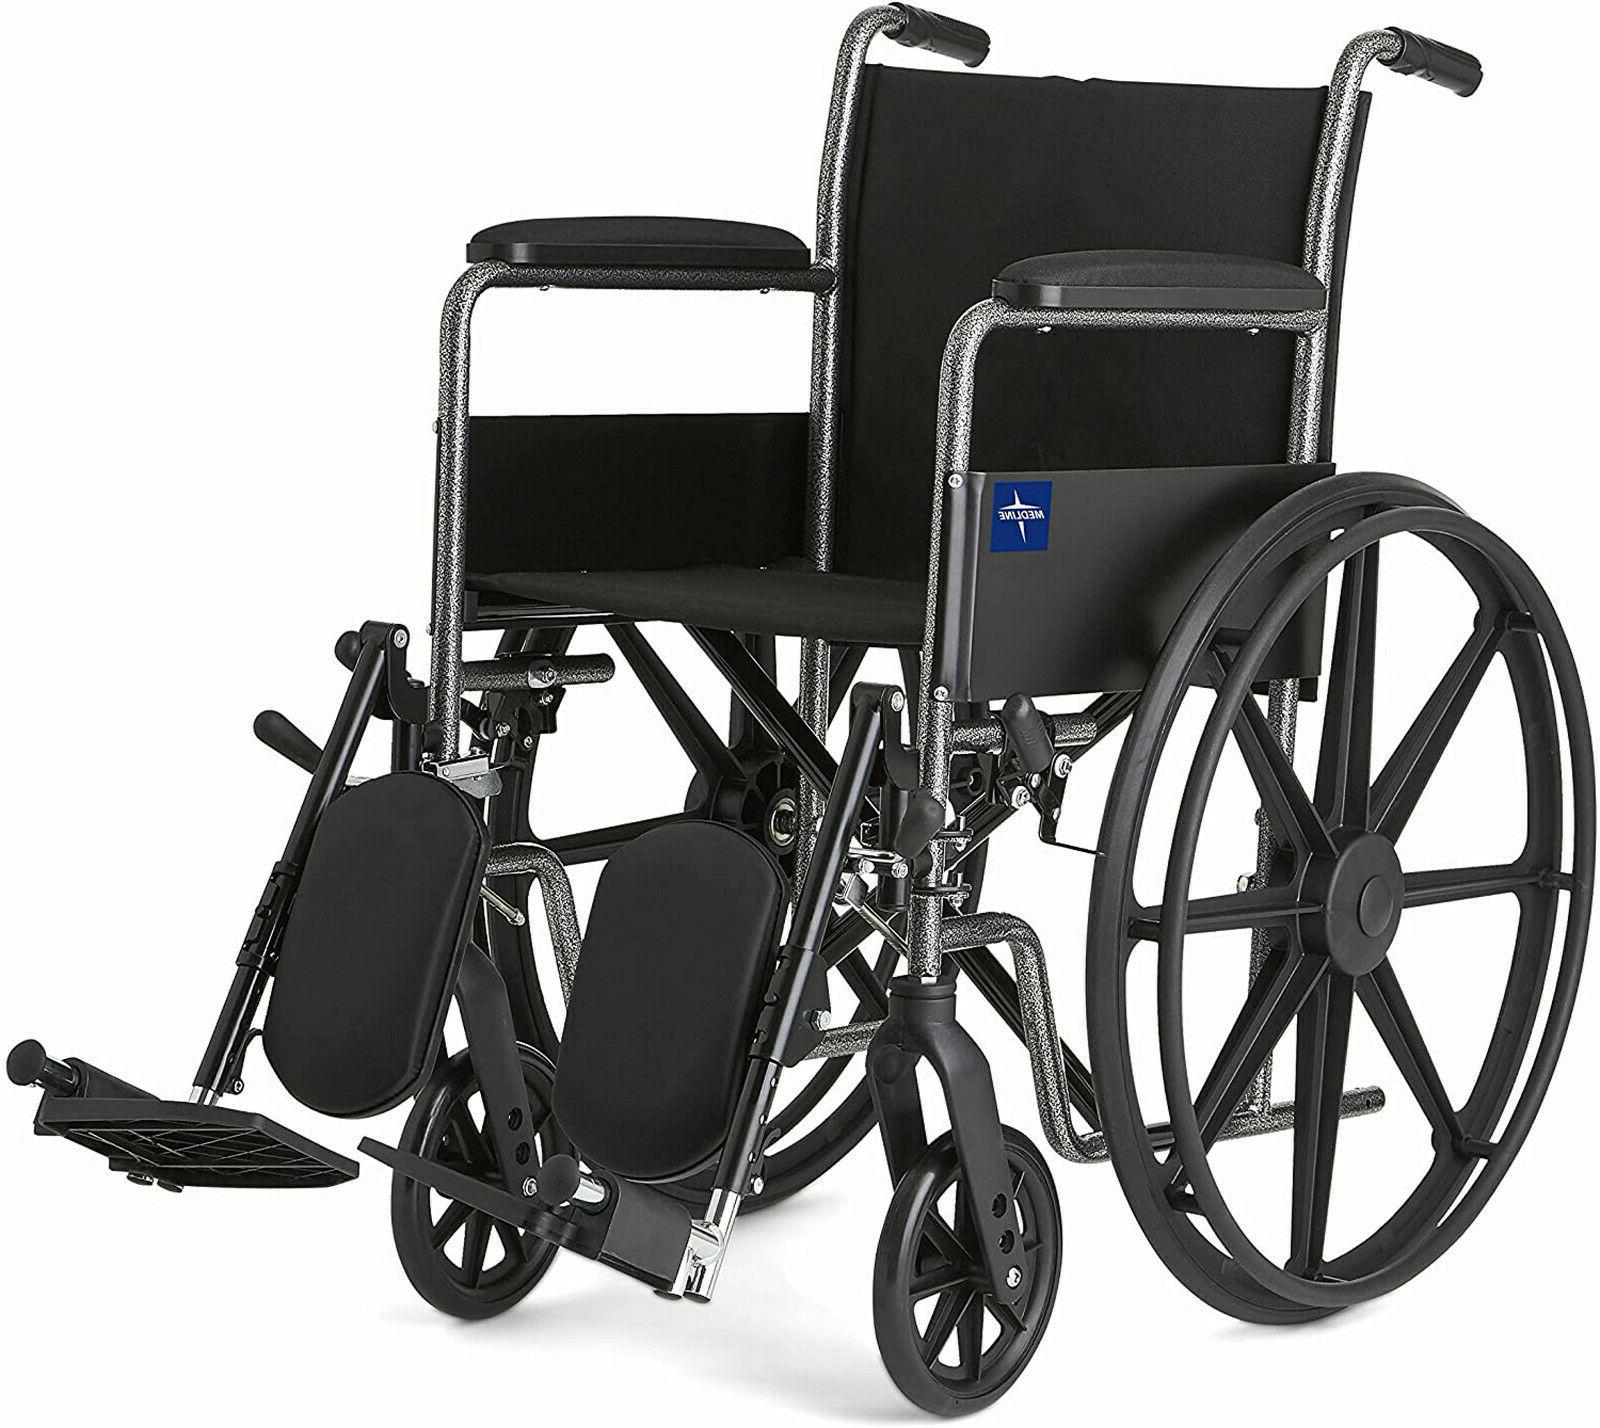 k1 basic wheelchairs full length arms elevating